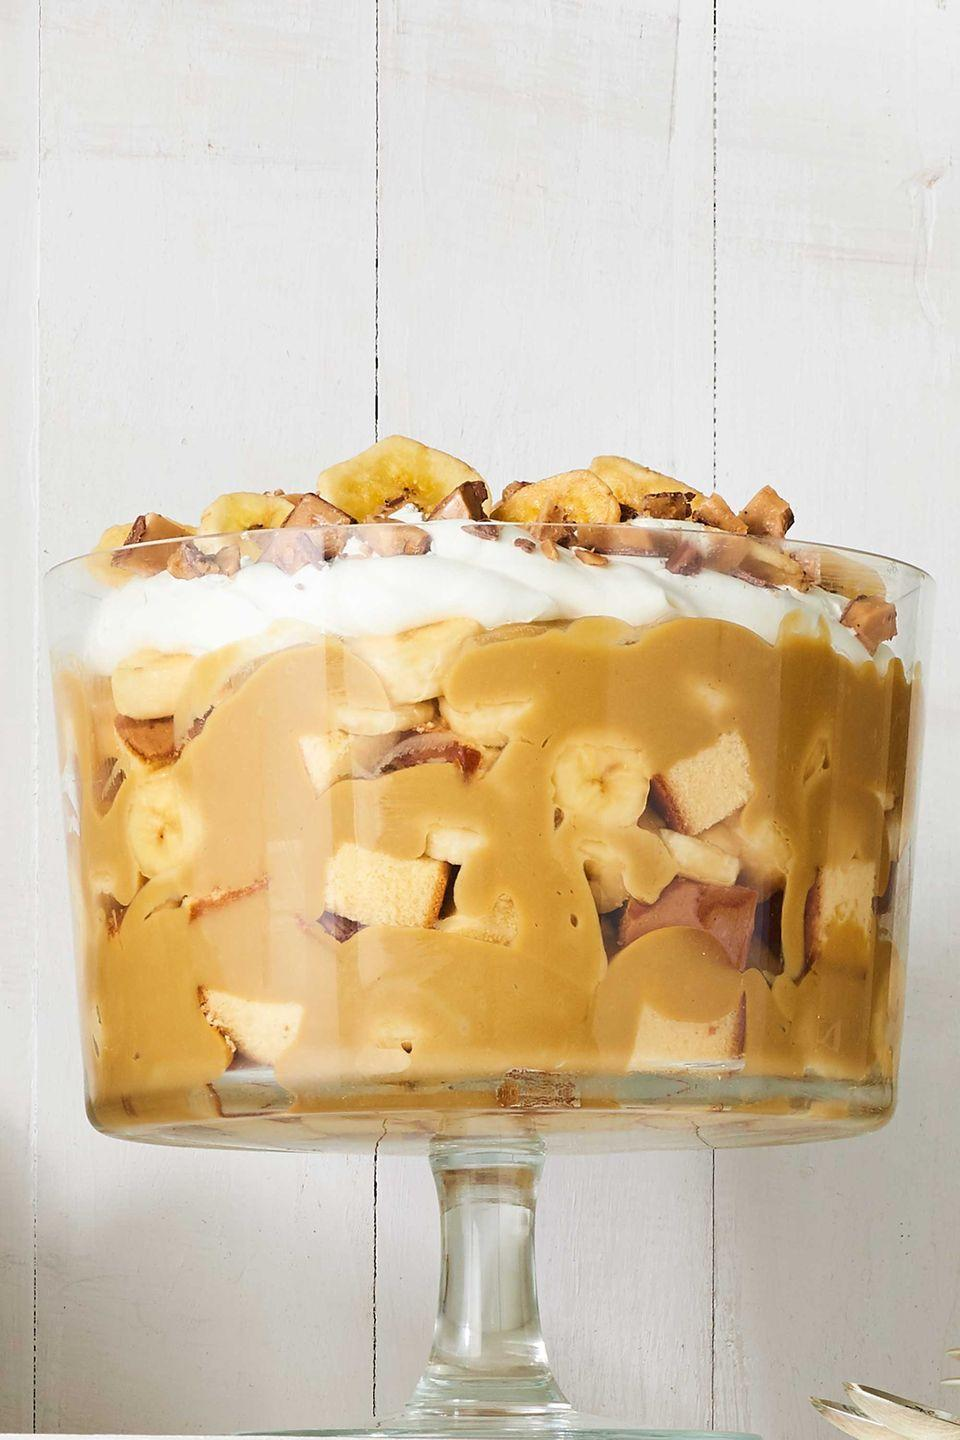 """<p>We can't imagine anything better than a holiday dessert layered with fresh bananas and pound cake. </p><p><strong><a href=""""https://www.countryliving.com/food-drinks/recipes/a40033/butterscotch-banana-trifle-recipe/"""" rel=""""nofollow noopener"""" target=""""_blank"""" data-ylk=""""slk:Get the recipe"""" class=""""link rapid-noclick-resp"""">Get the recipe</a>.</strong></p><p><a class=""""link rapid-noclick-resp"""" href=""""https://www.amazon.com/Anchor-Hocking-Monaco-Trifle-Bowl/dp/B0002YSLXC?tag=syn-yahoo-20&ascsubtag=%5Bartid%7C10050.g.2721%5Bsrc%7Cyahoo-us"""" rel=""""nofollow noopener"""" target=""""_blank"""" data-ylk=""""slk:SHOP TRIFLE BOWLS"""">SHOP TRIFLE BOWLS</a><br></p>"""